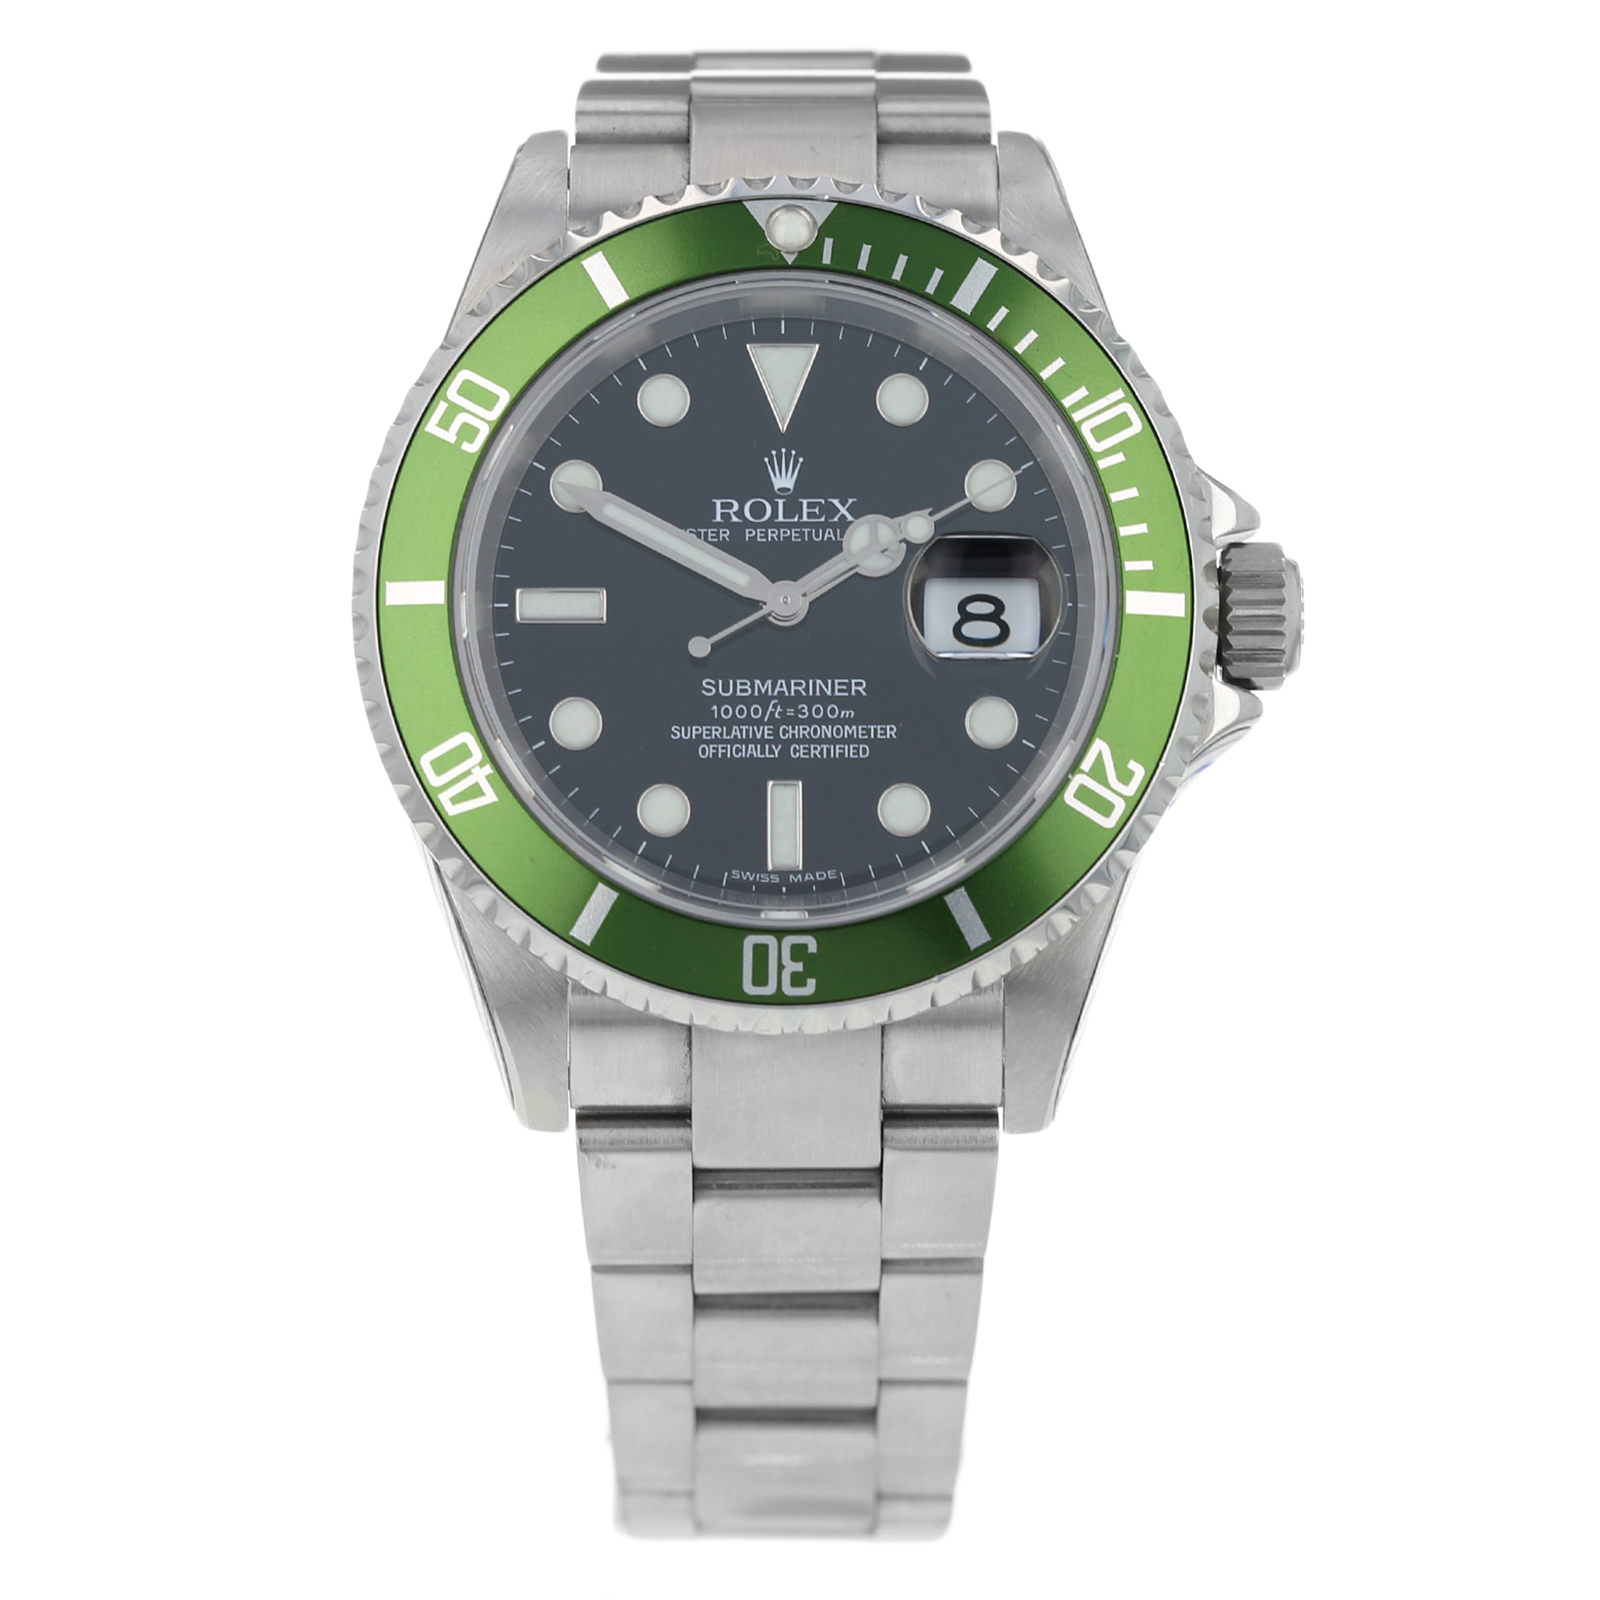 Pre-Owned Rolex Submariner Mens Watch 16610LV